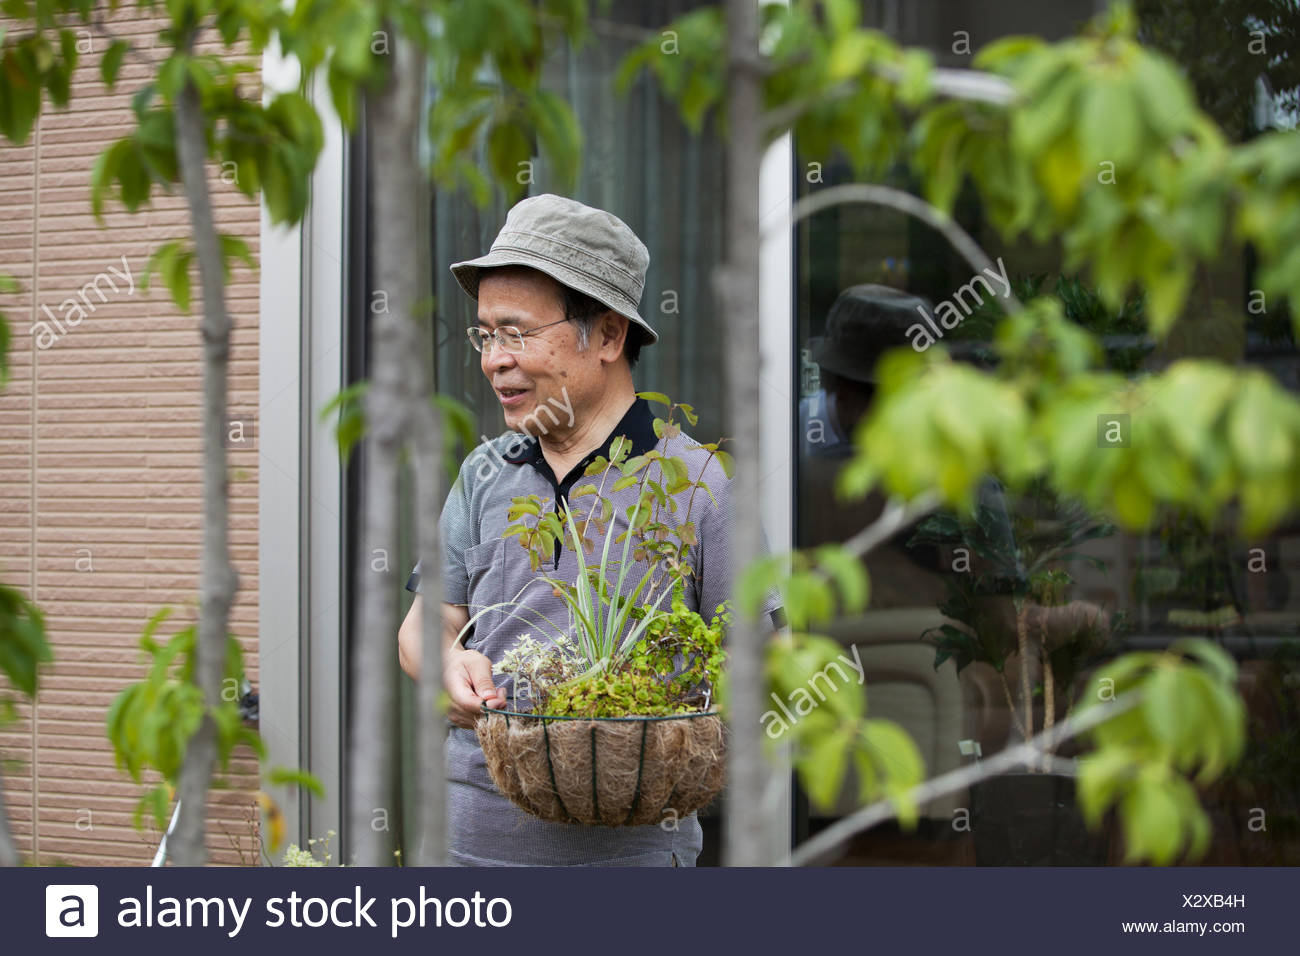 A man standing in his garden. - Stock Image